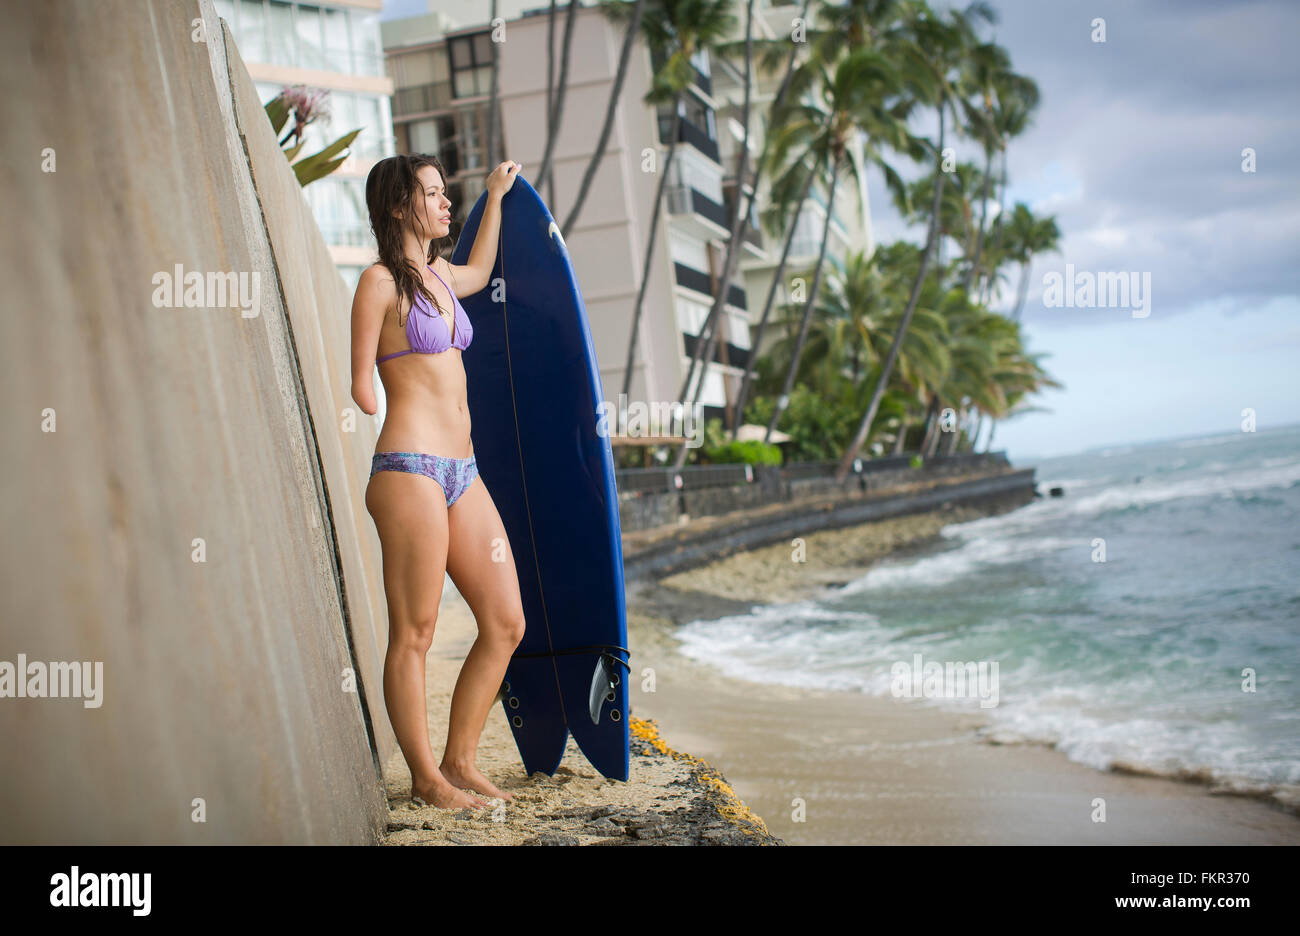 Mixed Race amputee with surfboard on beach Banque D'Images